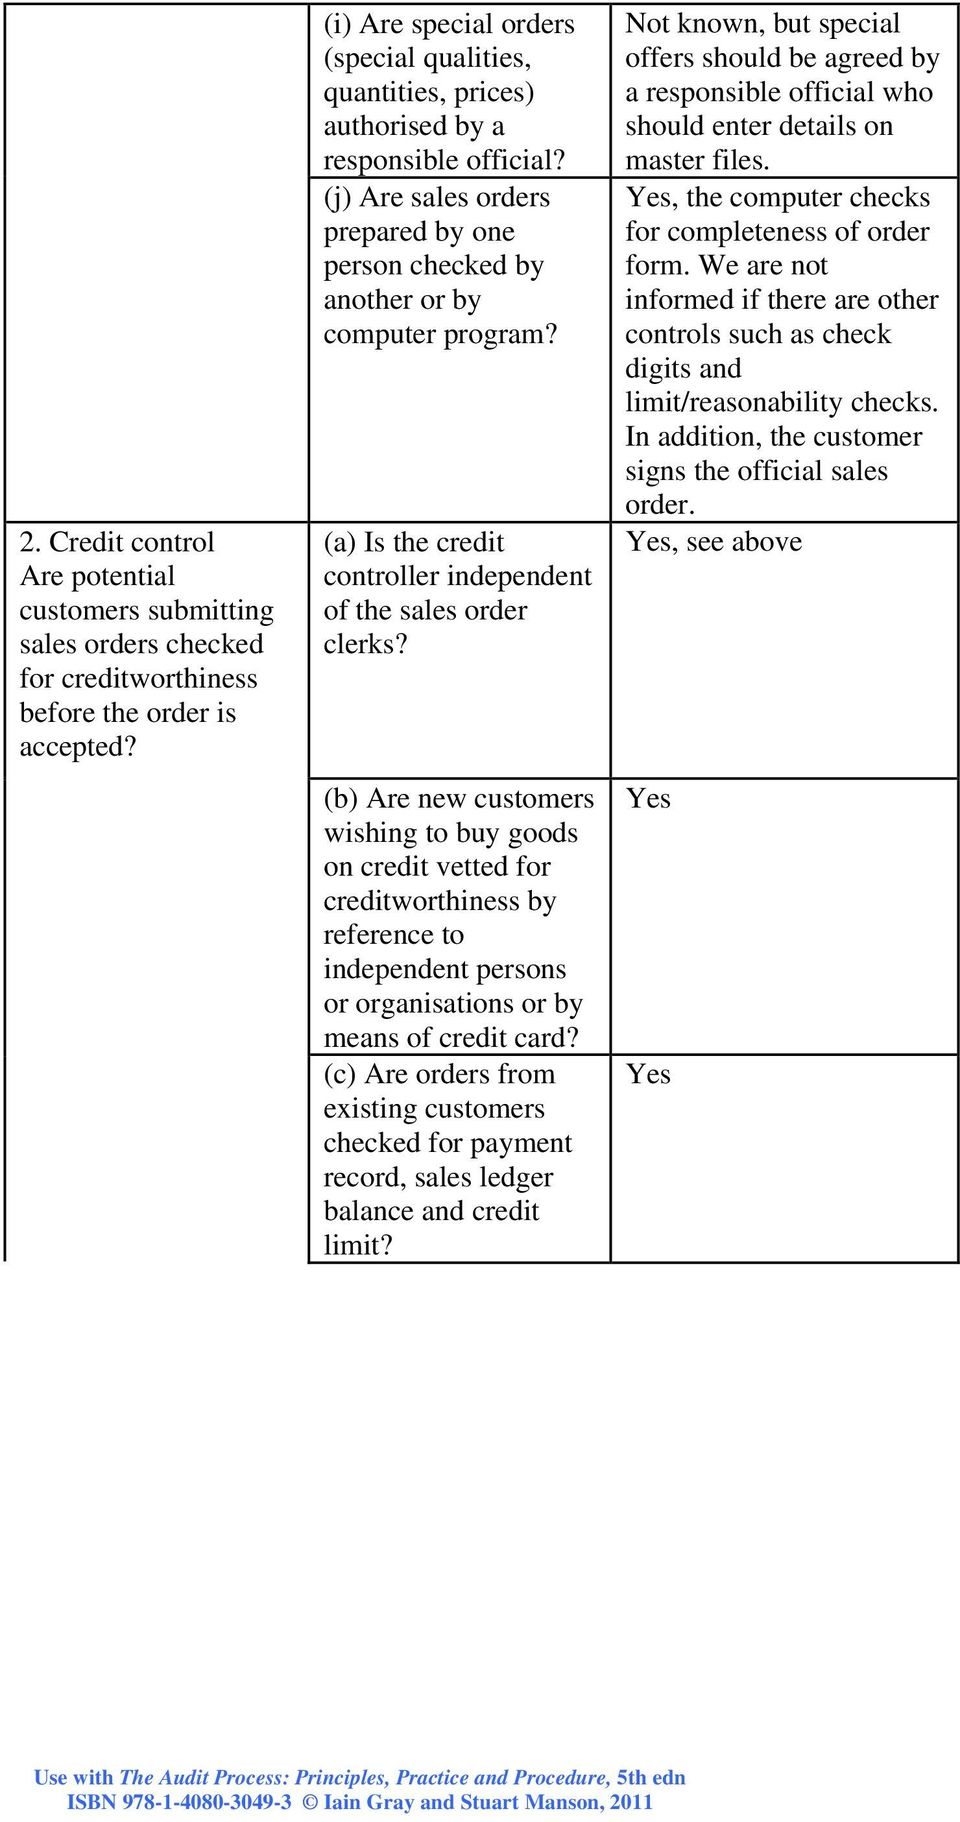 (a) Is the credit controller independent of the sales order clerks?